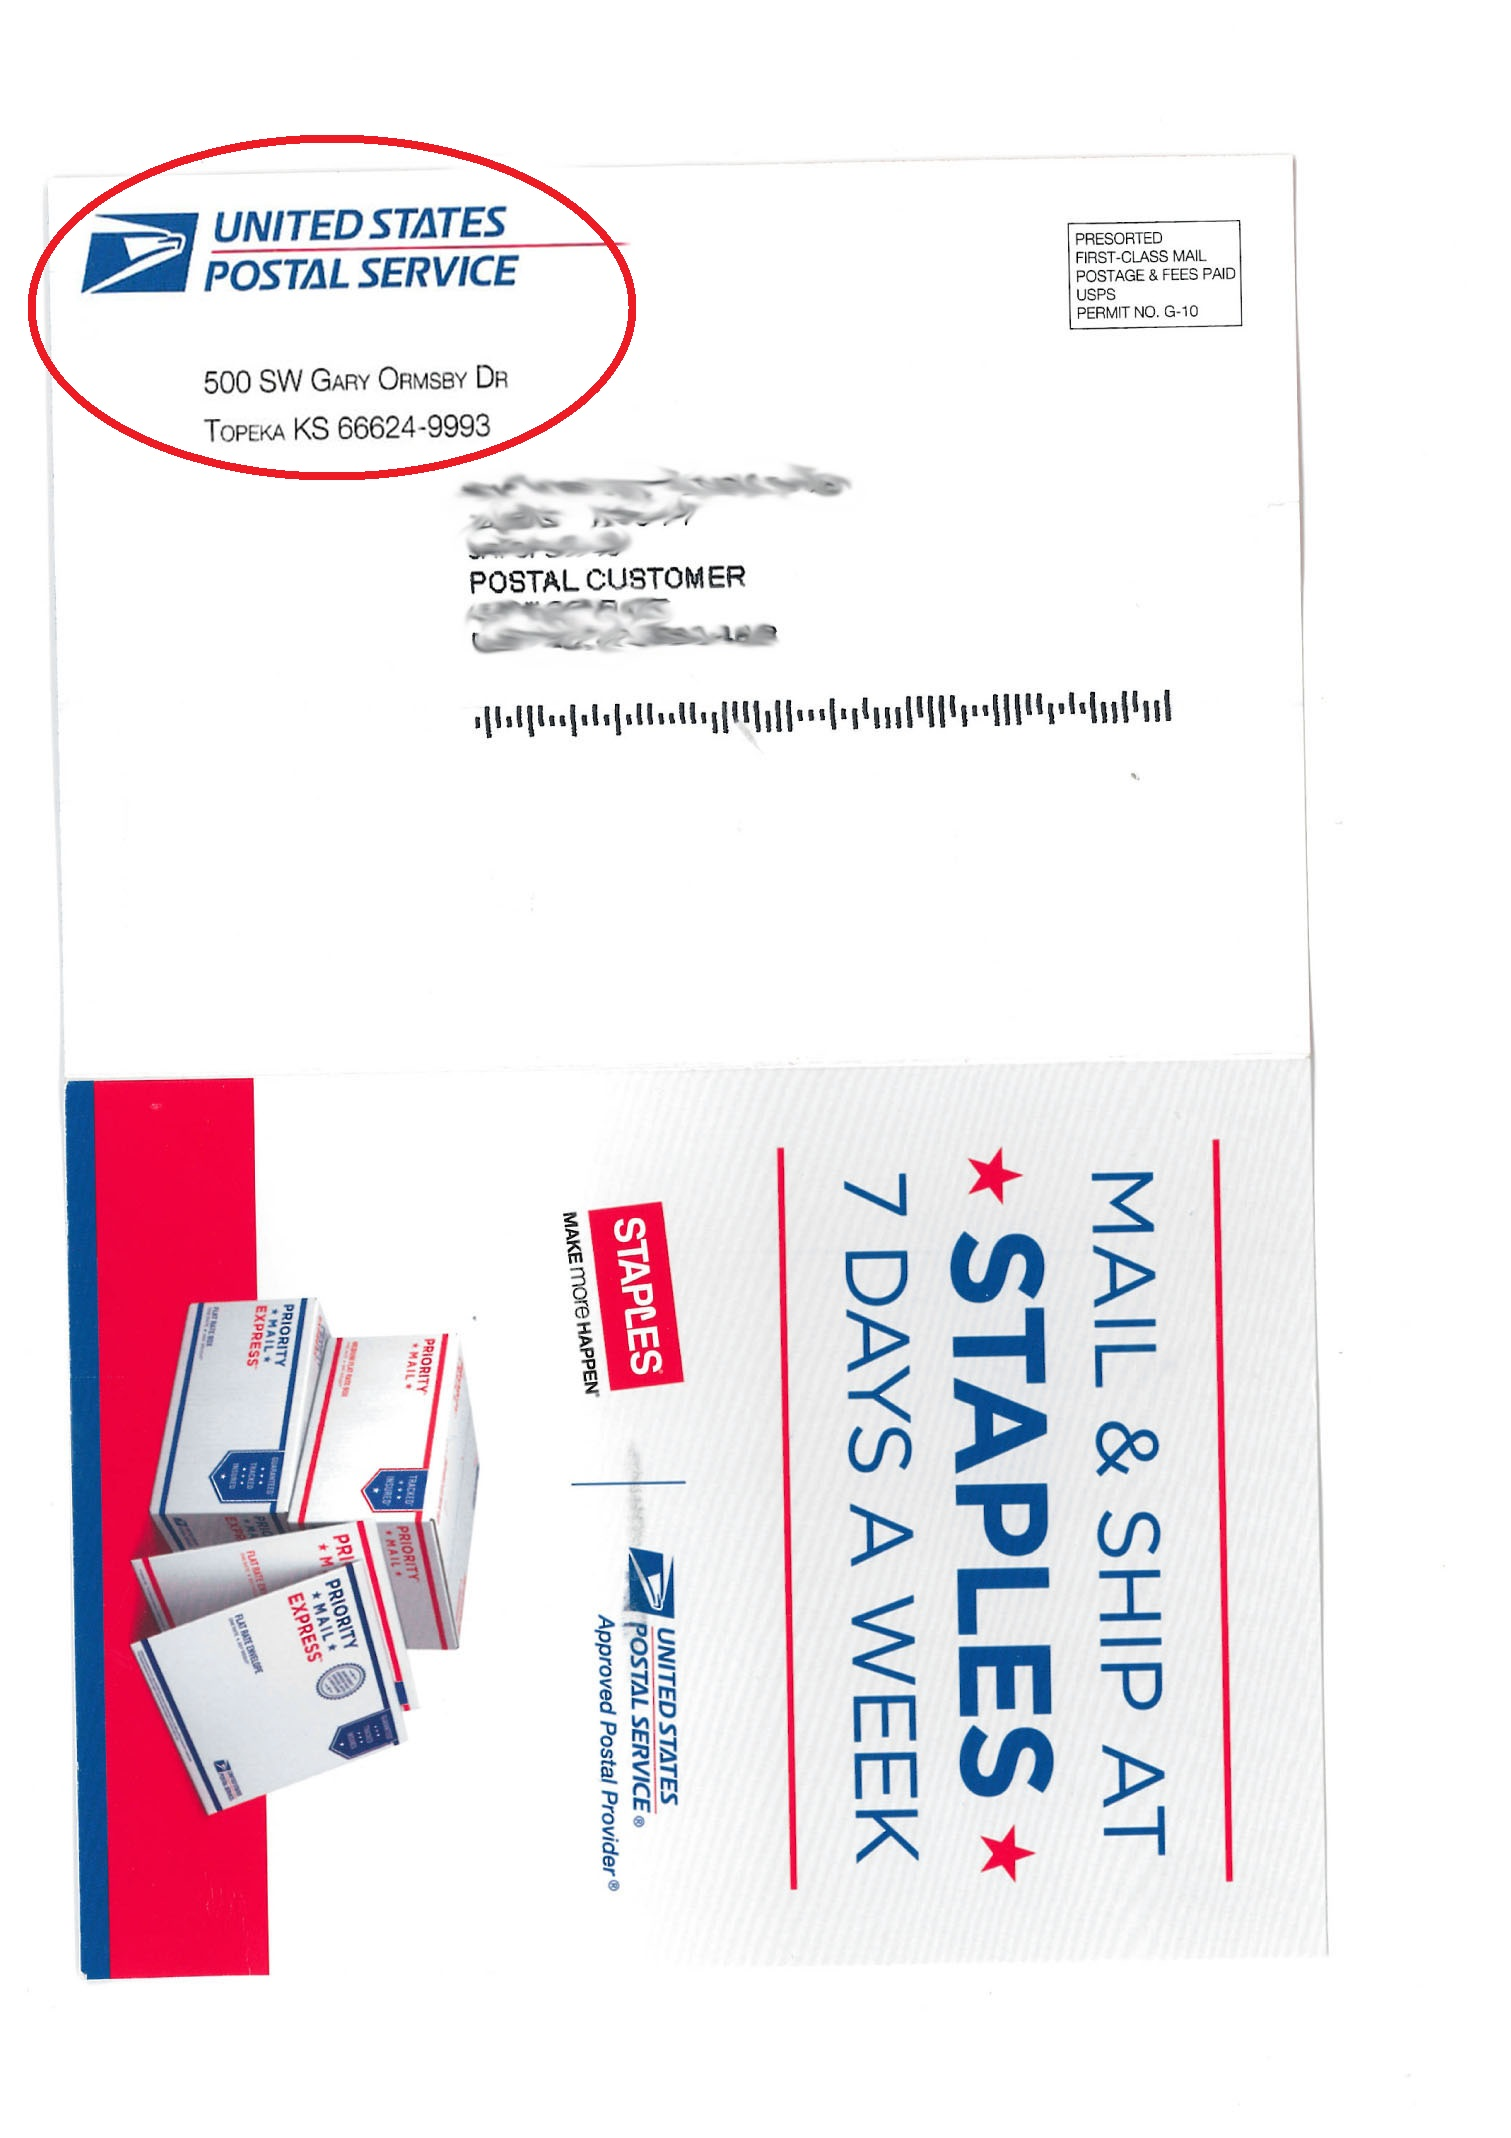 Usps moving discount coupons